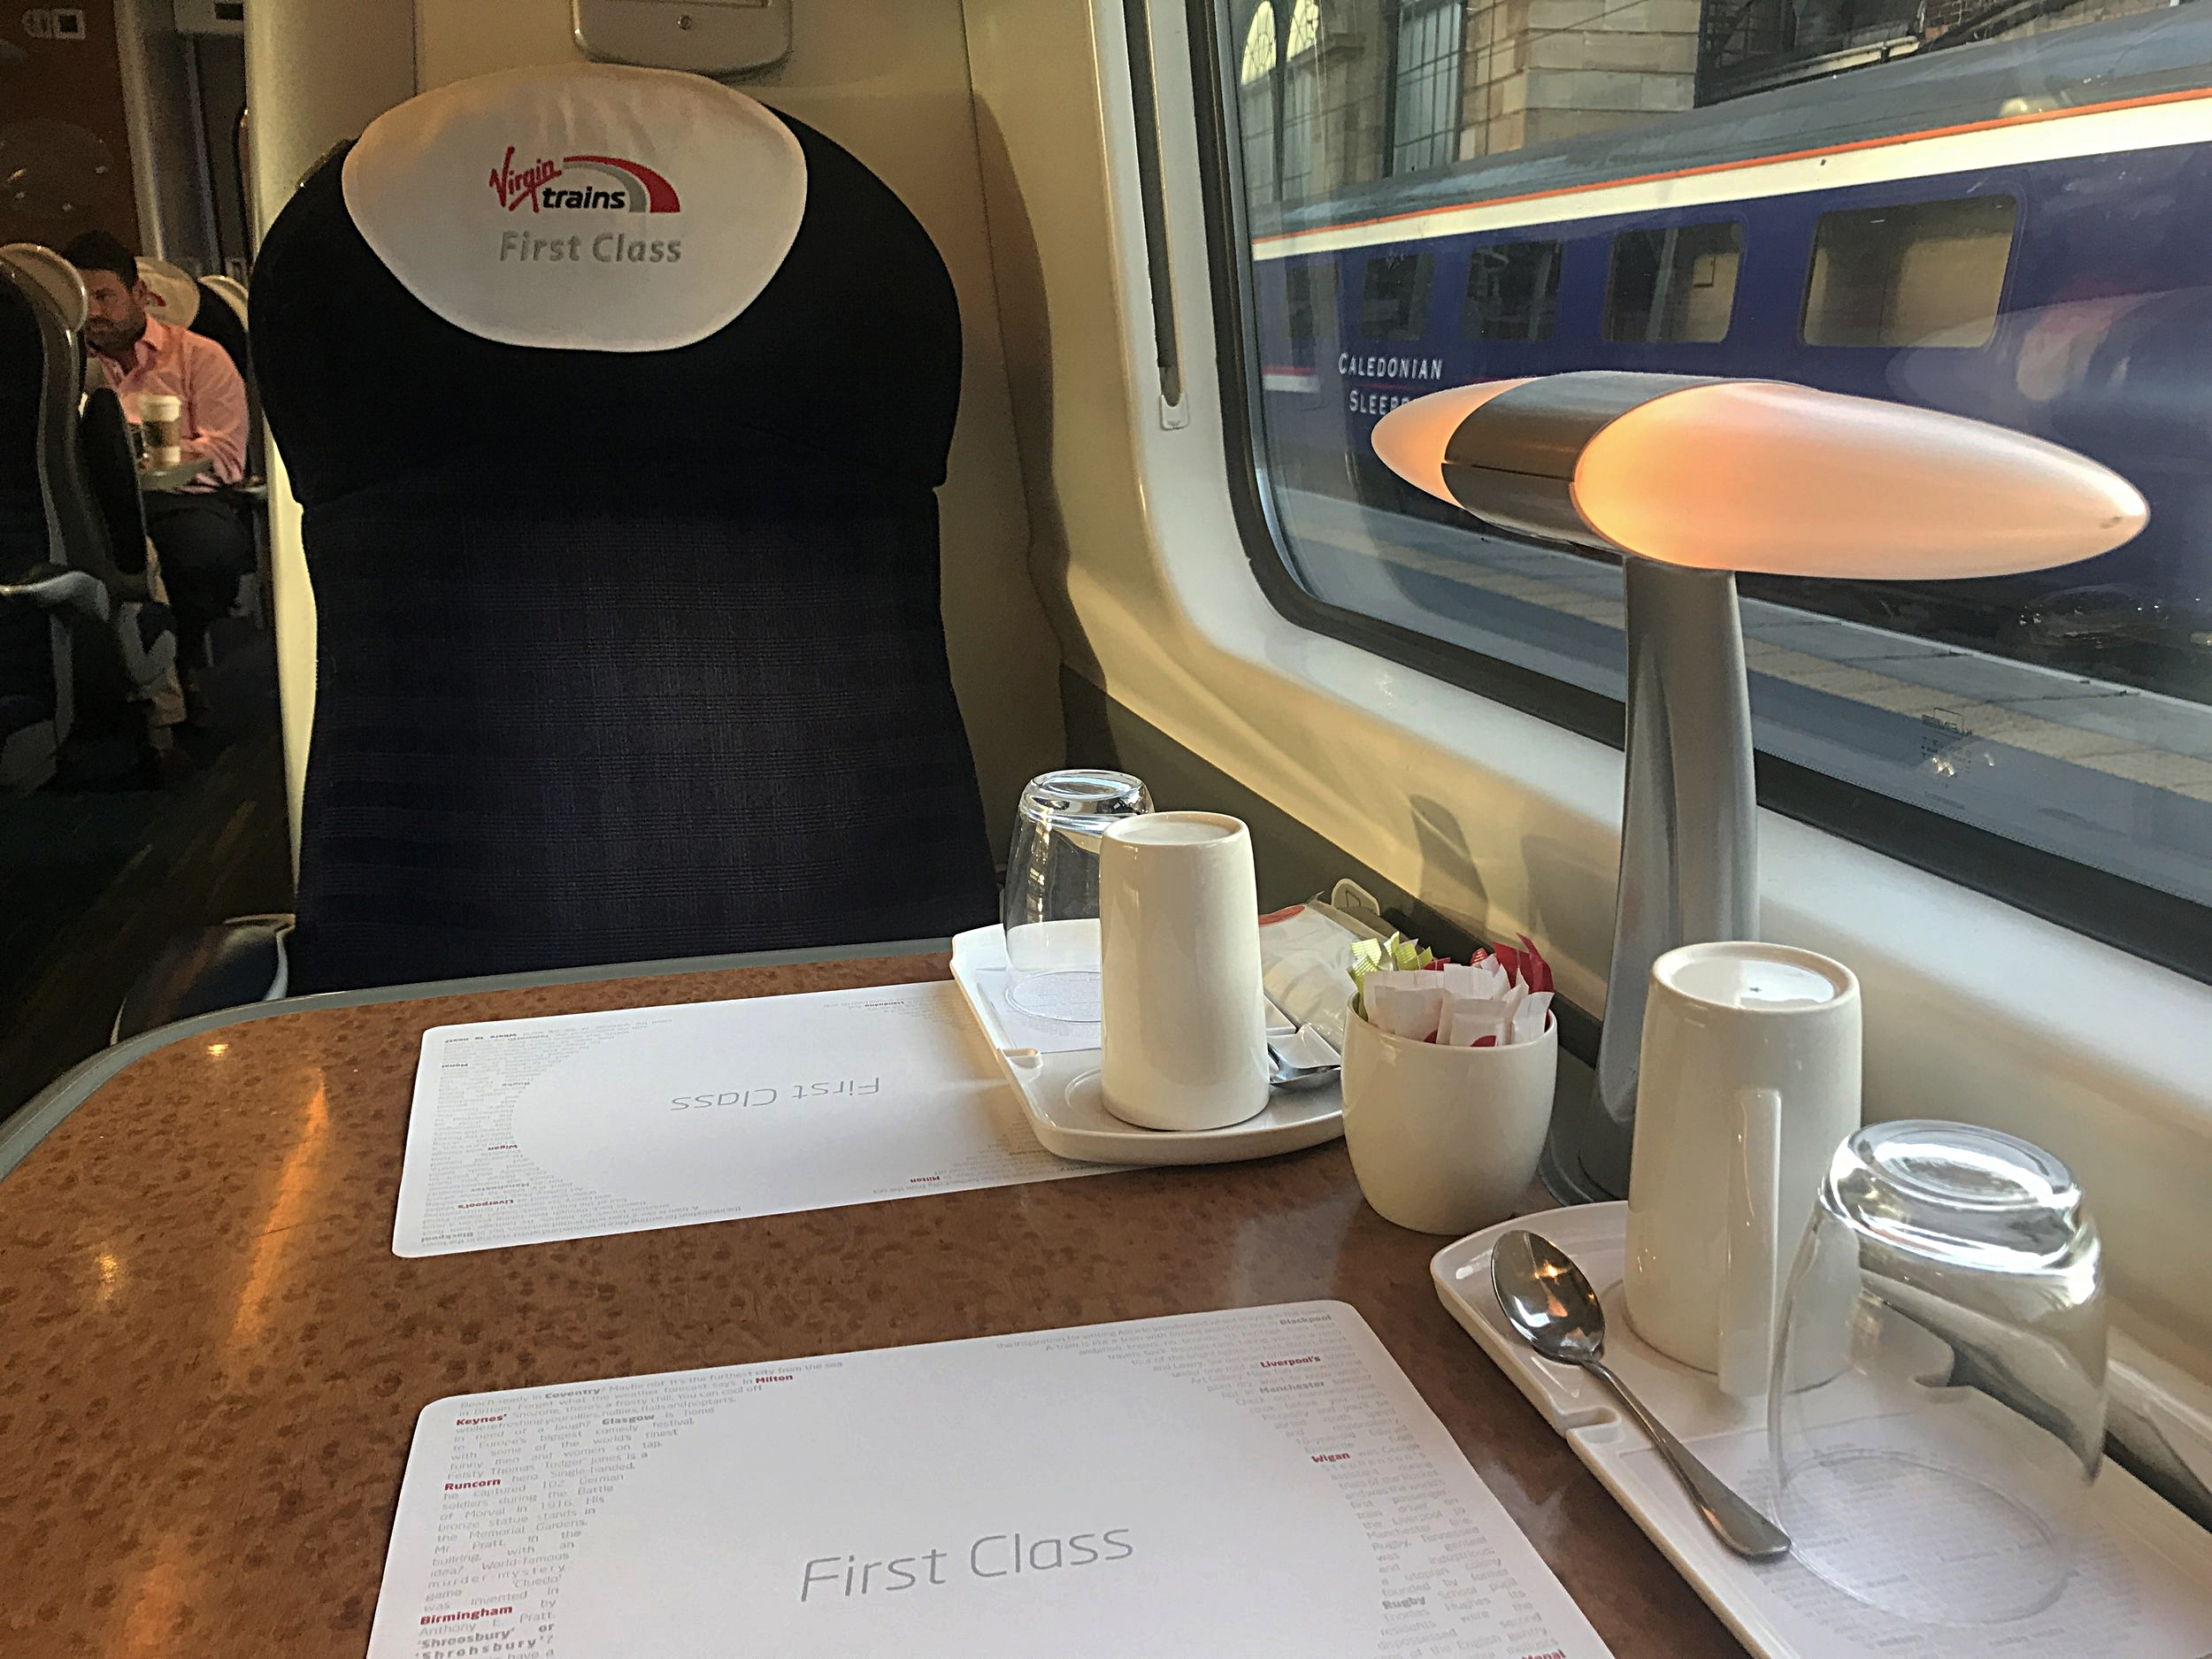 How to get cheap Virgin Trains tickets